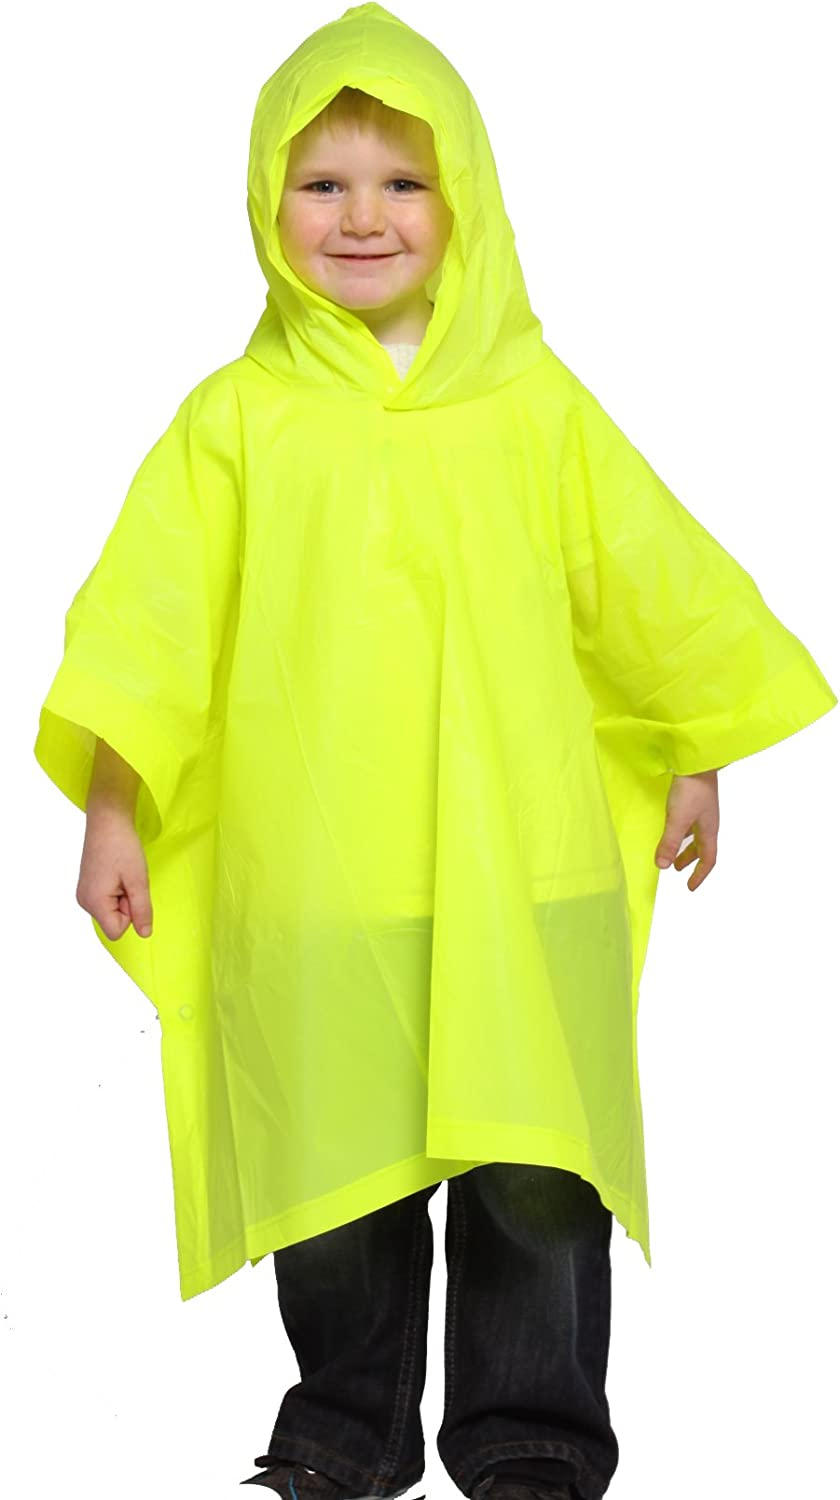 StayDry Rain Poncho Child Size Suit Ages 6-10 Years Waterproof EVA Material with Hood